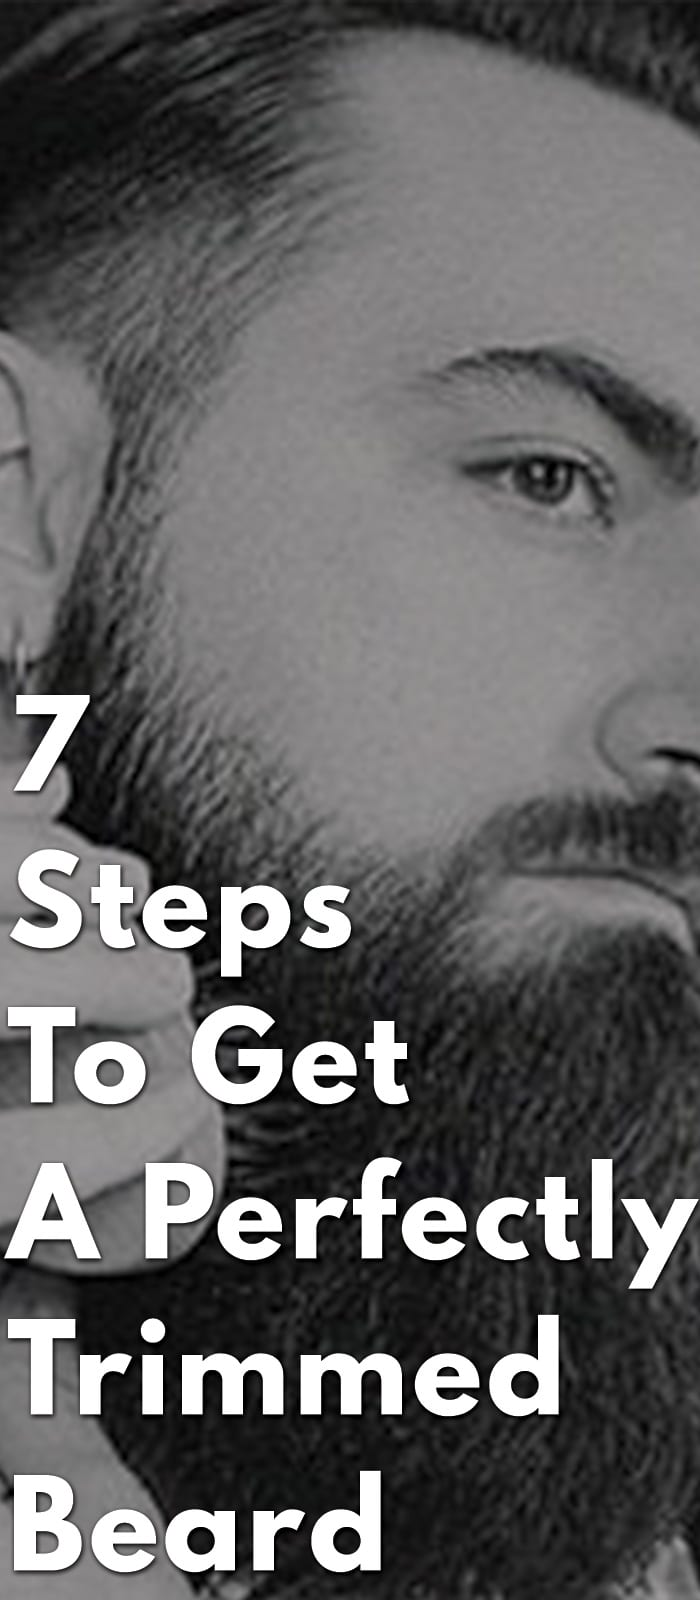 7-Steps-To-Get-A-Perfectly-Trimmed-Beard